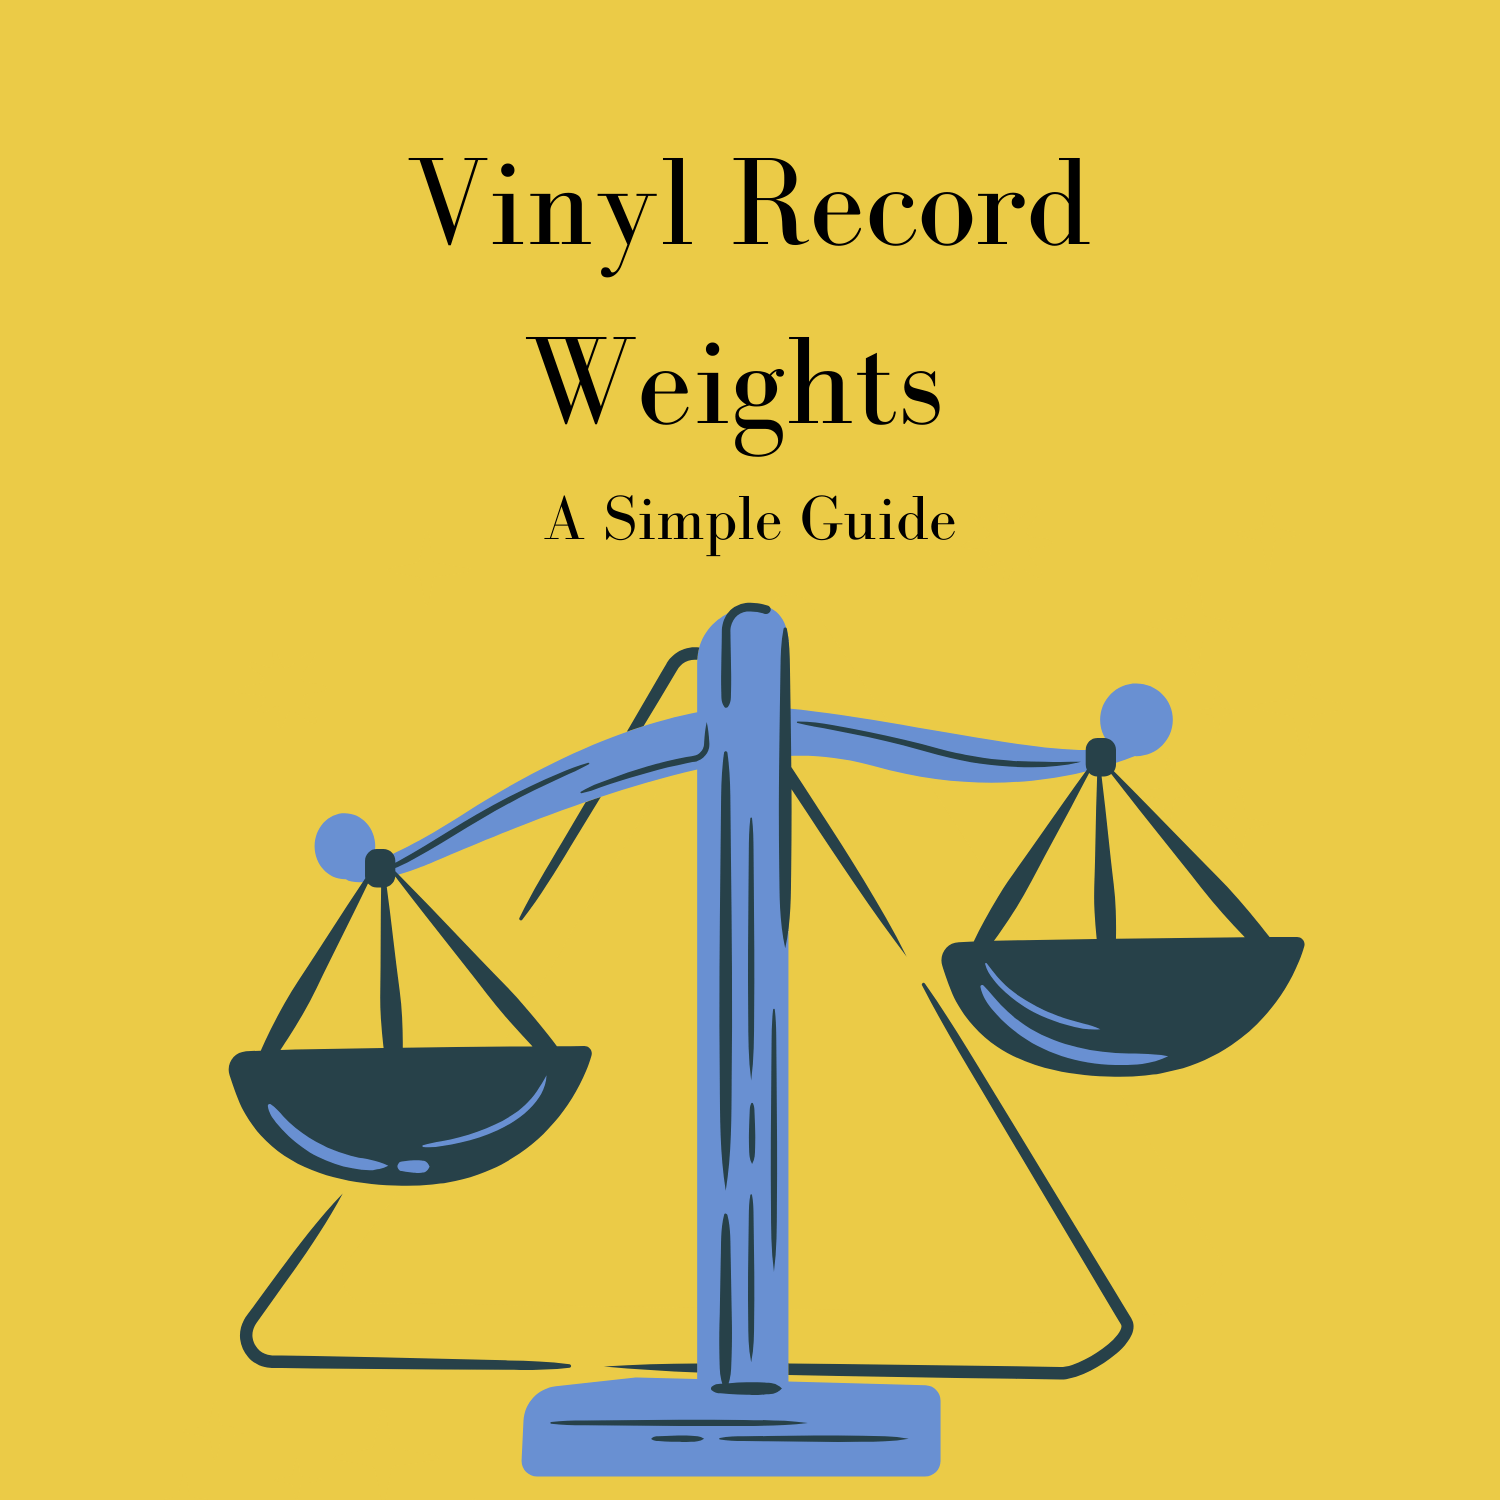 vinyl record weights grams and pounds